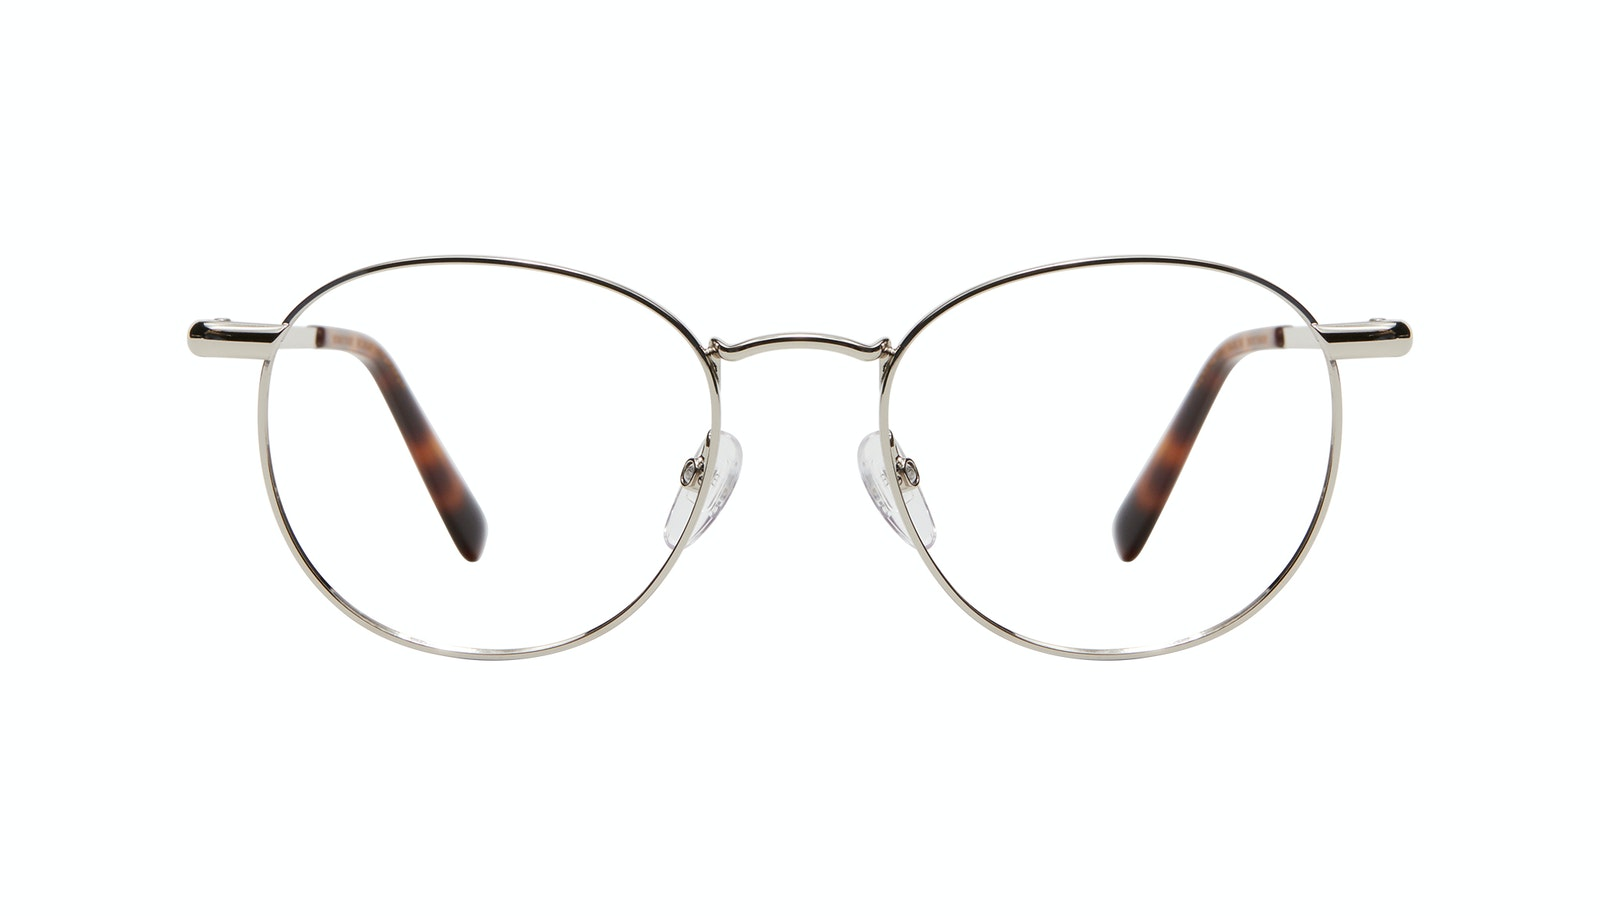 Affordable Fashion Glasses Round Eyeglasses Men Women Divine M Silver